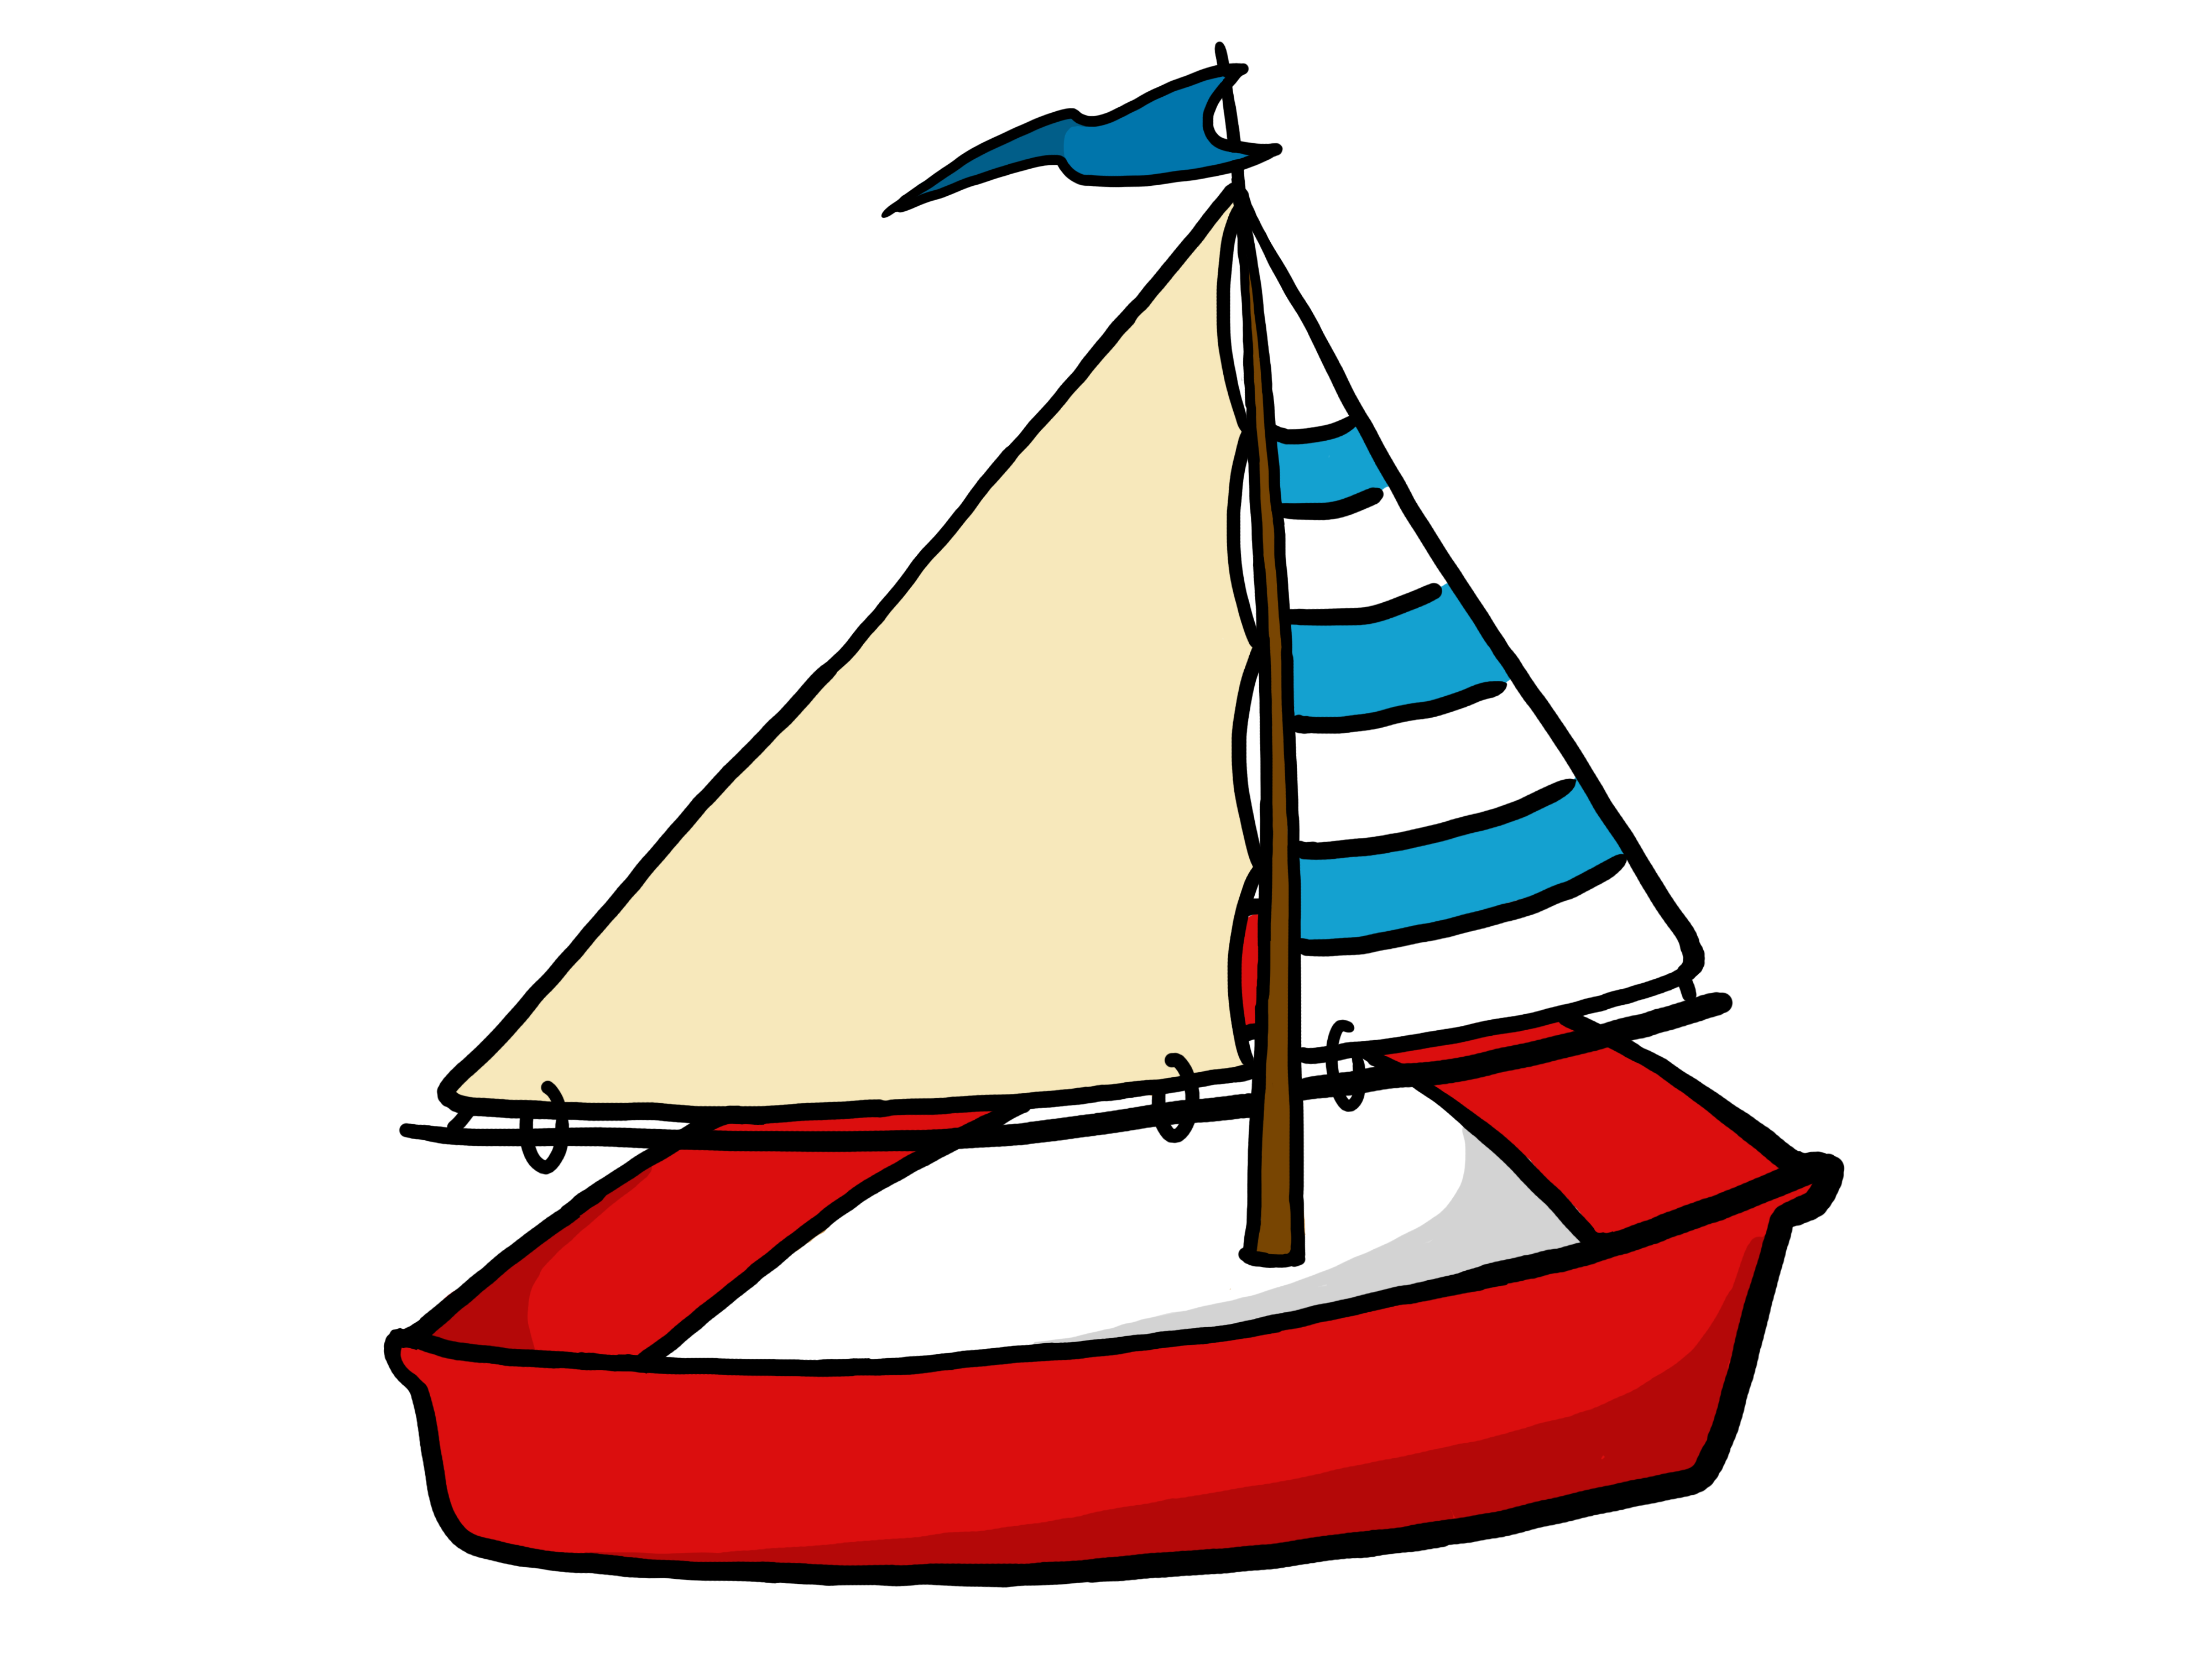 Clipart Of A Sailing Boat - ClipArt Best